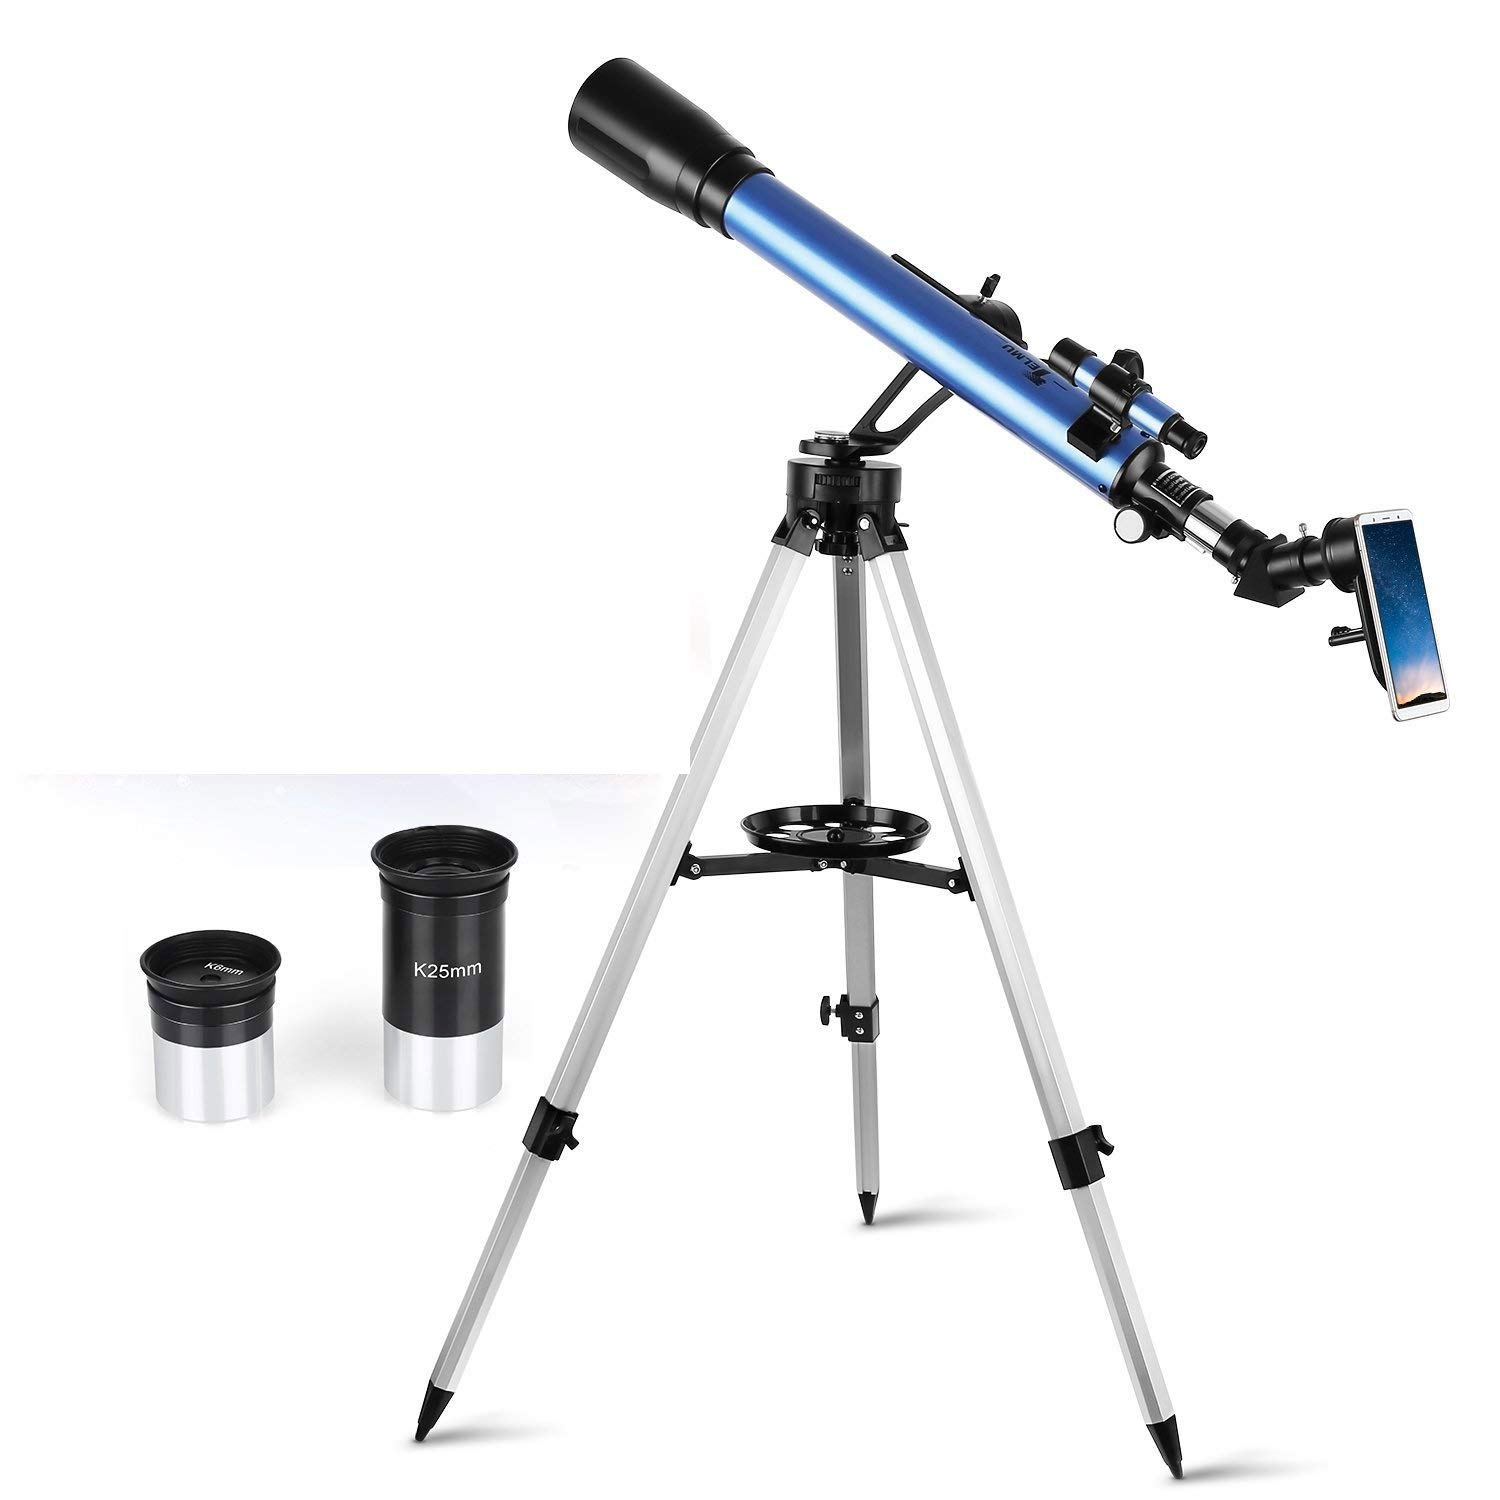 TELMU Telescope, 60mm Aperture & 700mm Focal Length (27.5In-46.5In) Astronomical Refractor Telescope with Adjustable Tripod & & Finder Scope- Portable Travel Telescope Perfect for Kids Children by TELMU